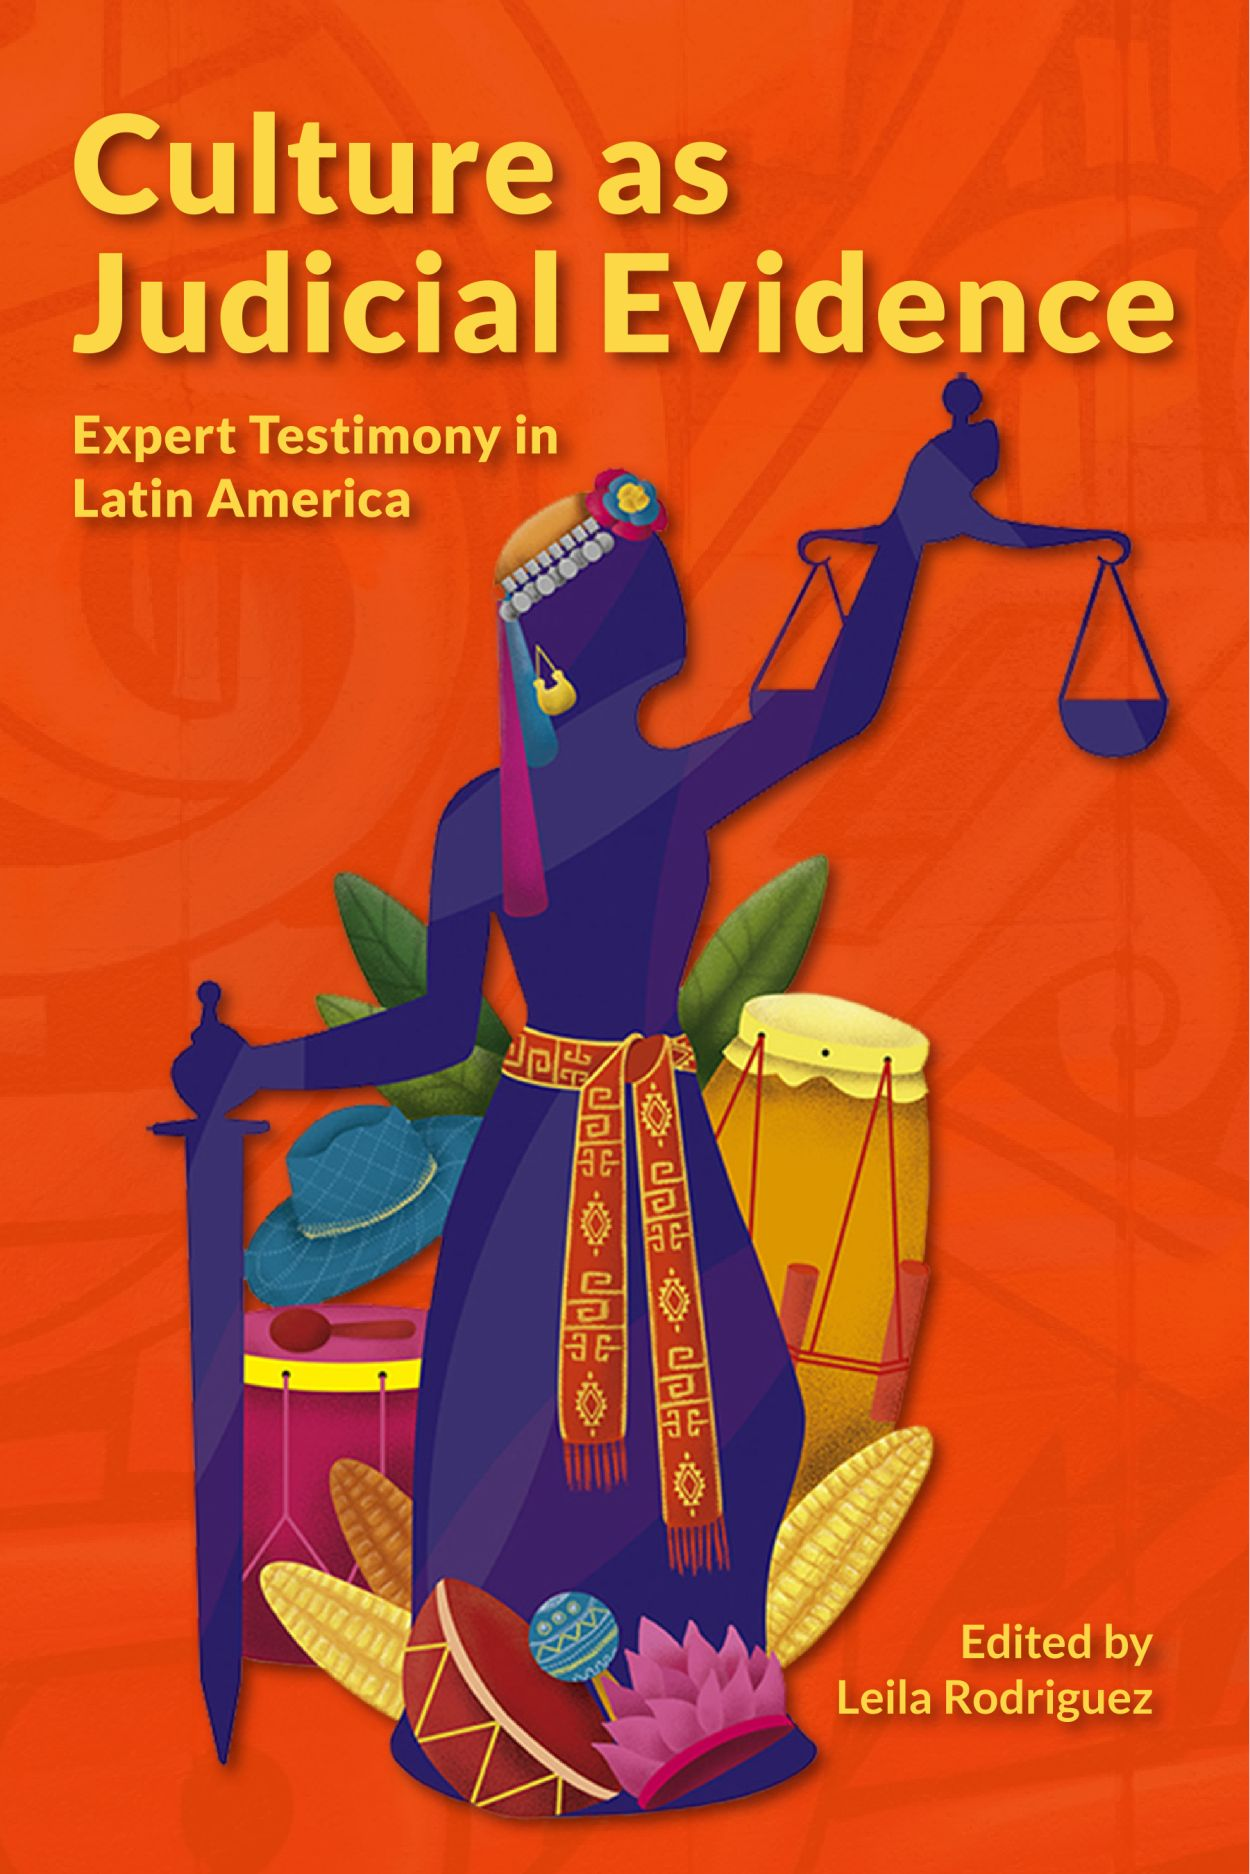 Culture as Judicial Evidence: Expert Testimony in Latin America